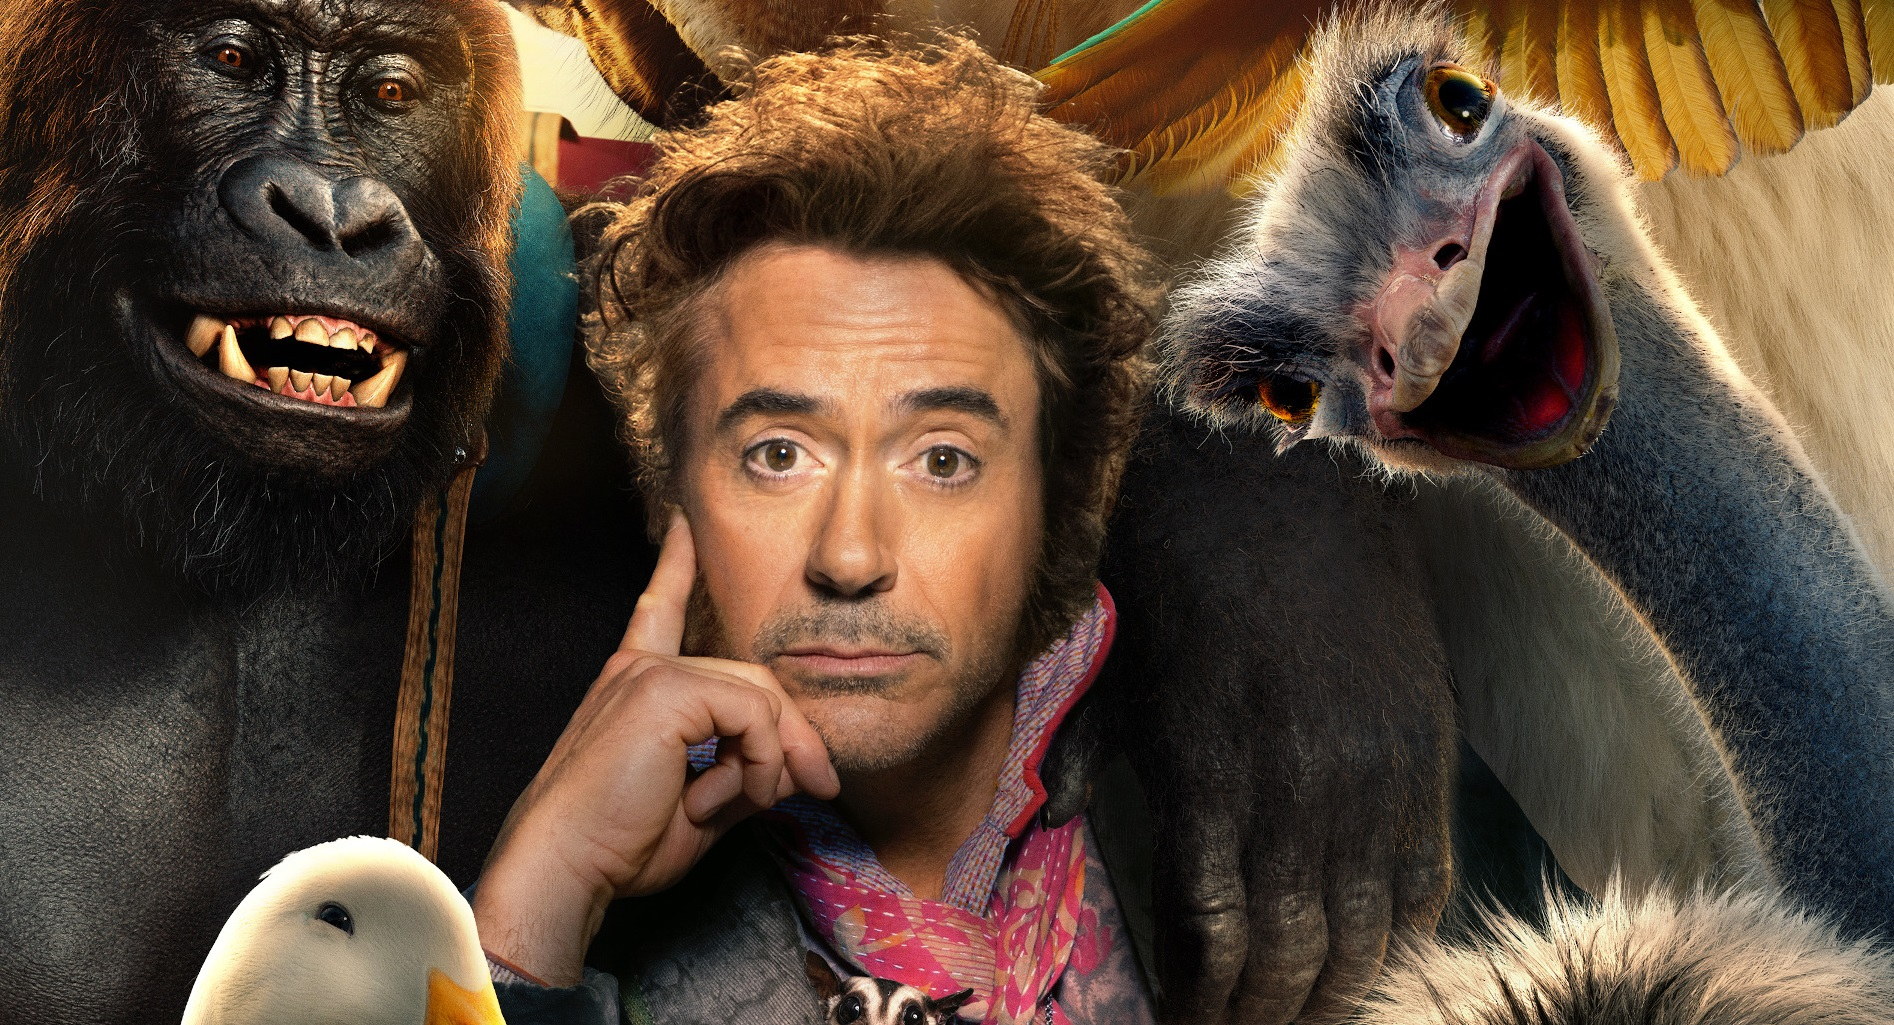 szmk_dolittle_robert_downey_jr_1.jpg